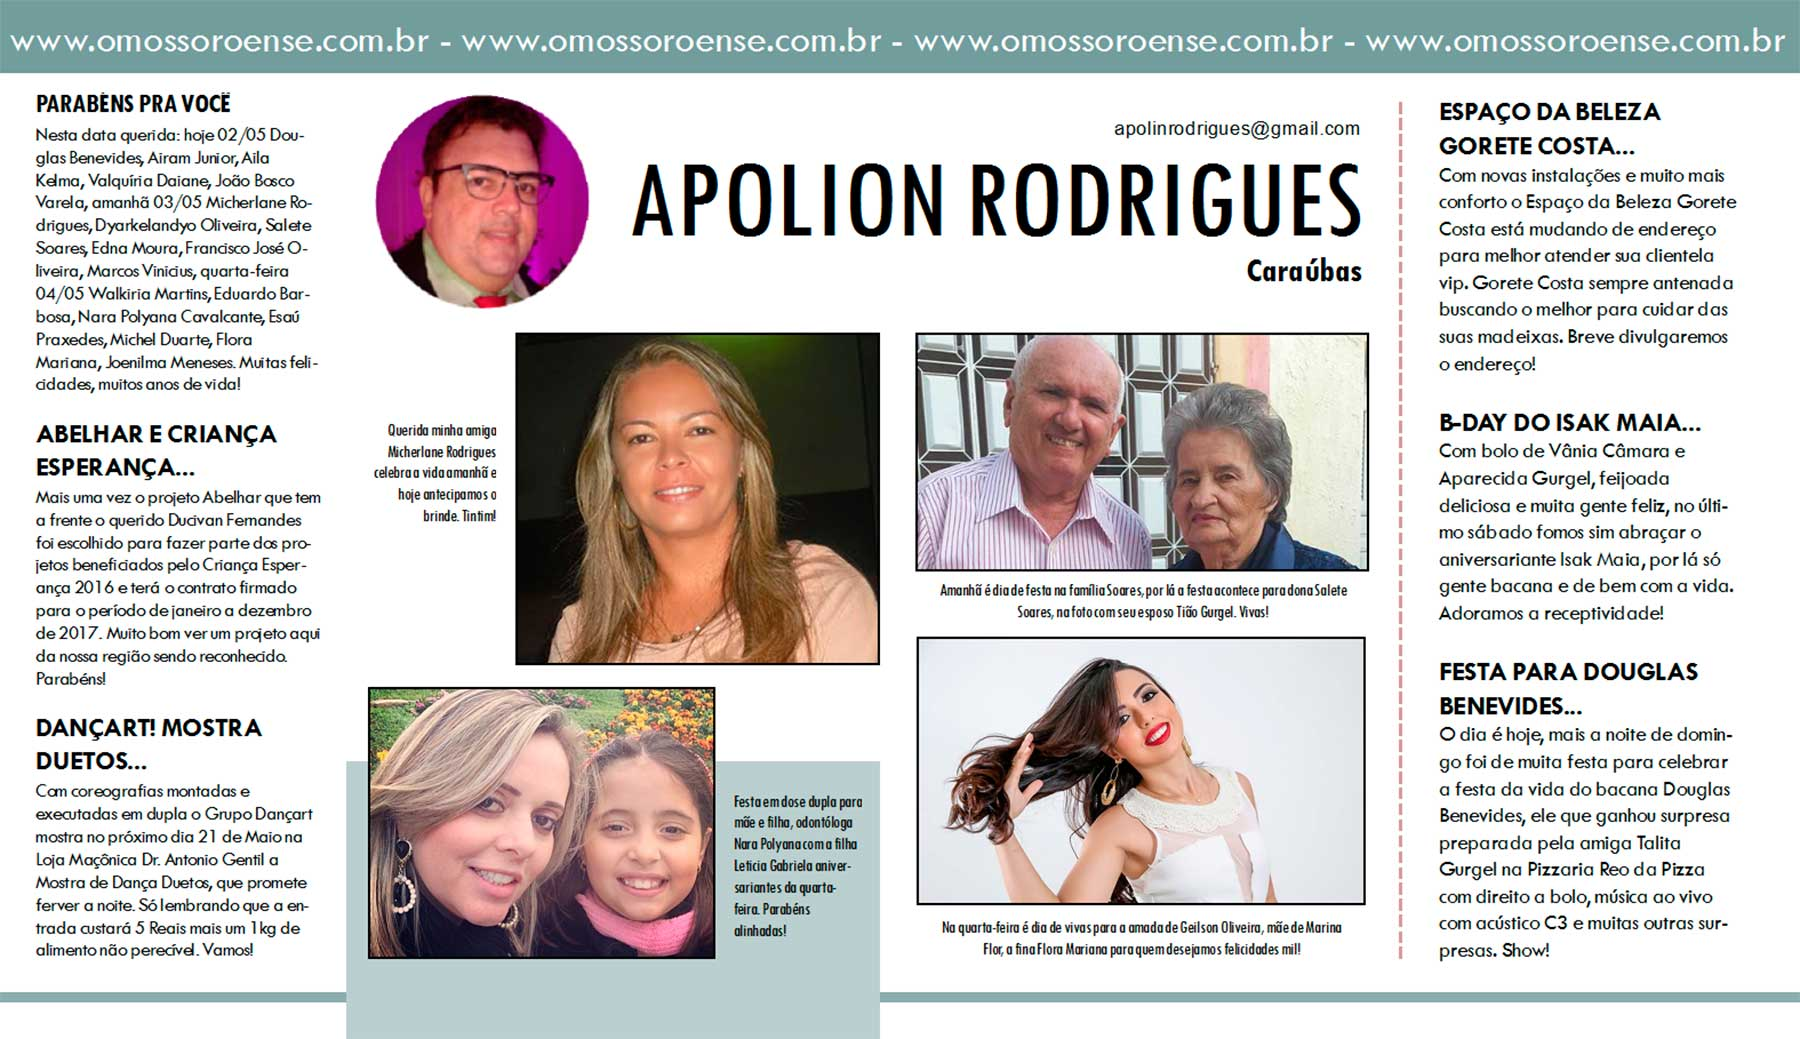 APOLION-RODRIGUES-02-05-2016